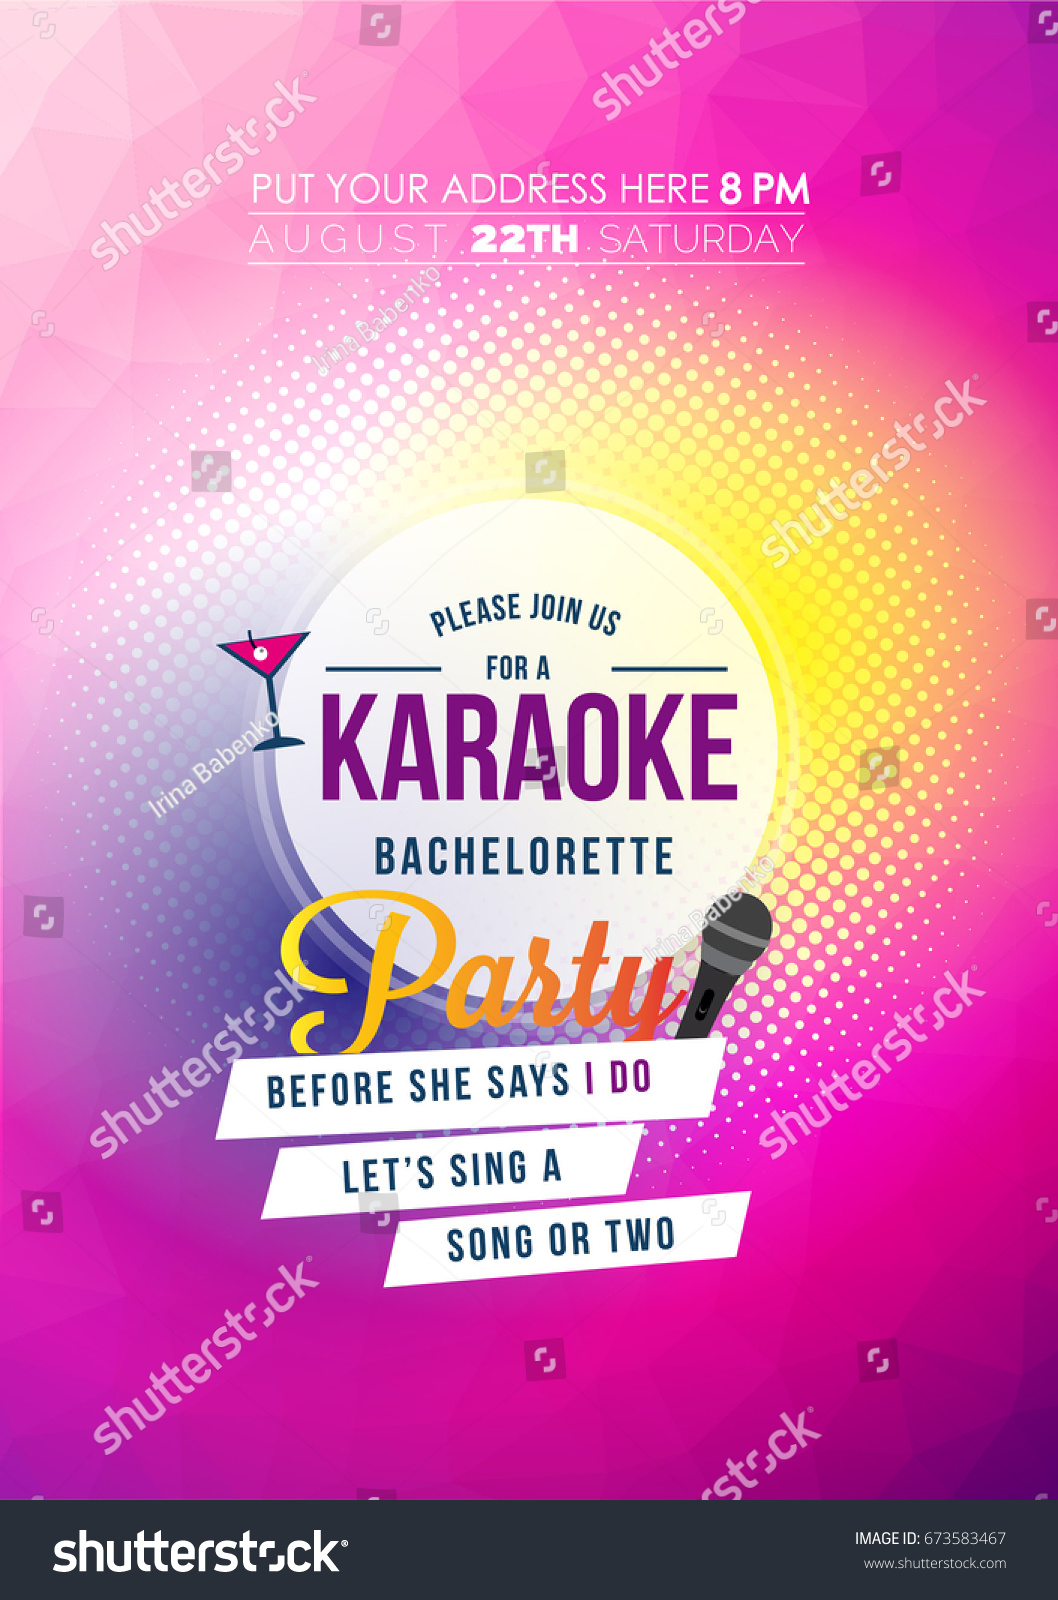 Bachelorette Karaoke Party Invitation Card Stock Vector 673583467 ...